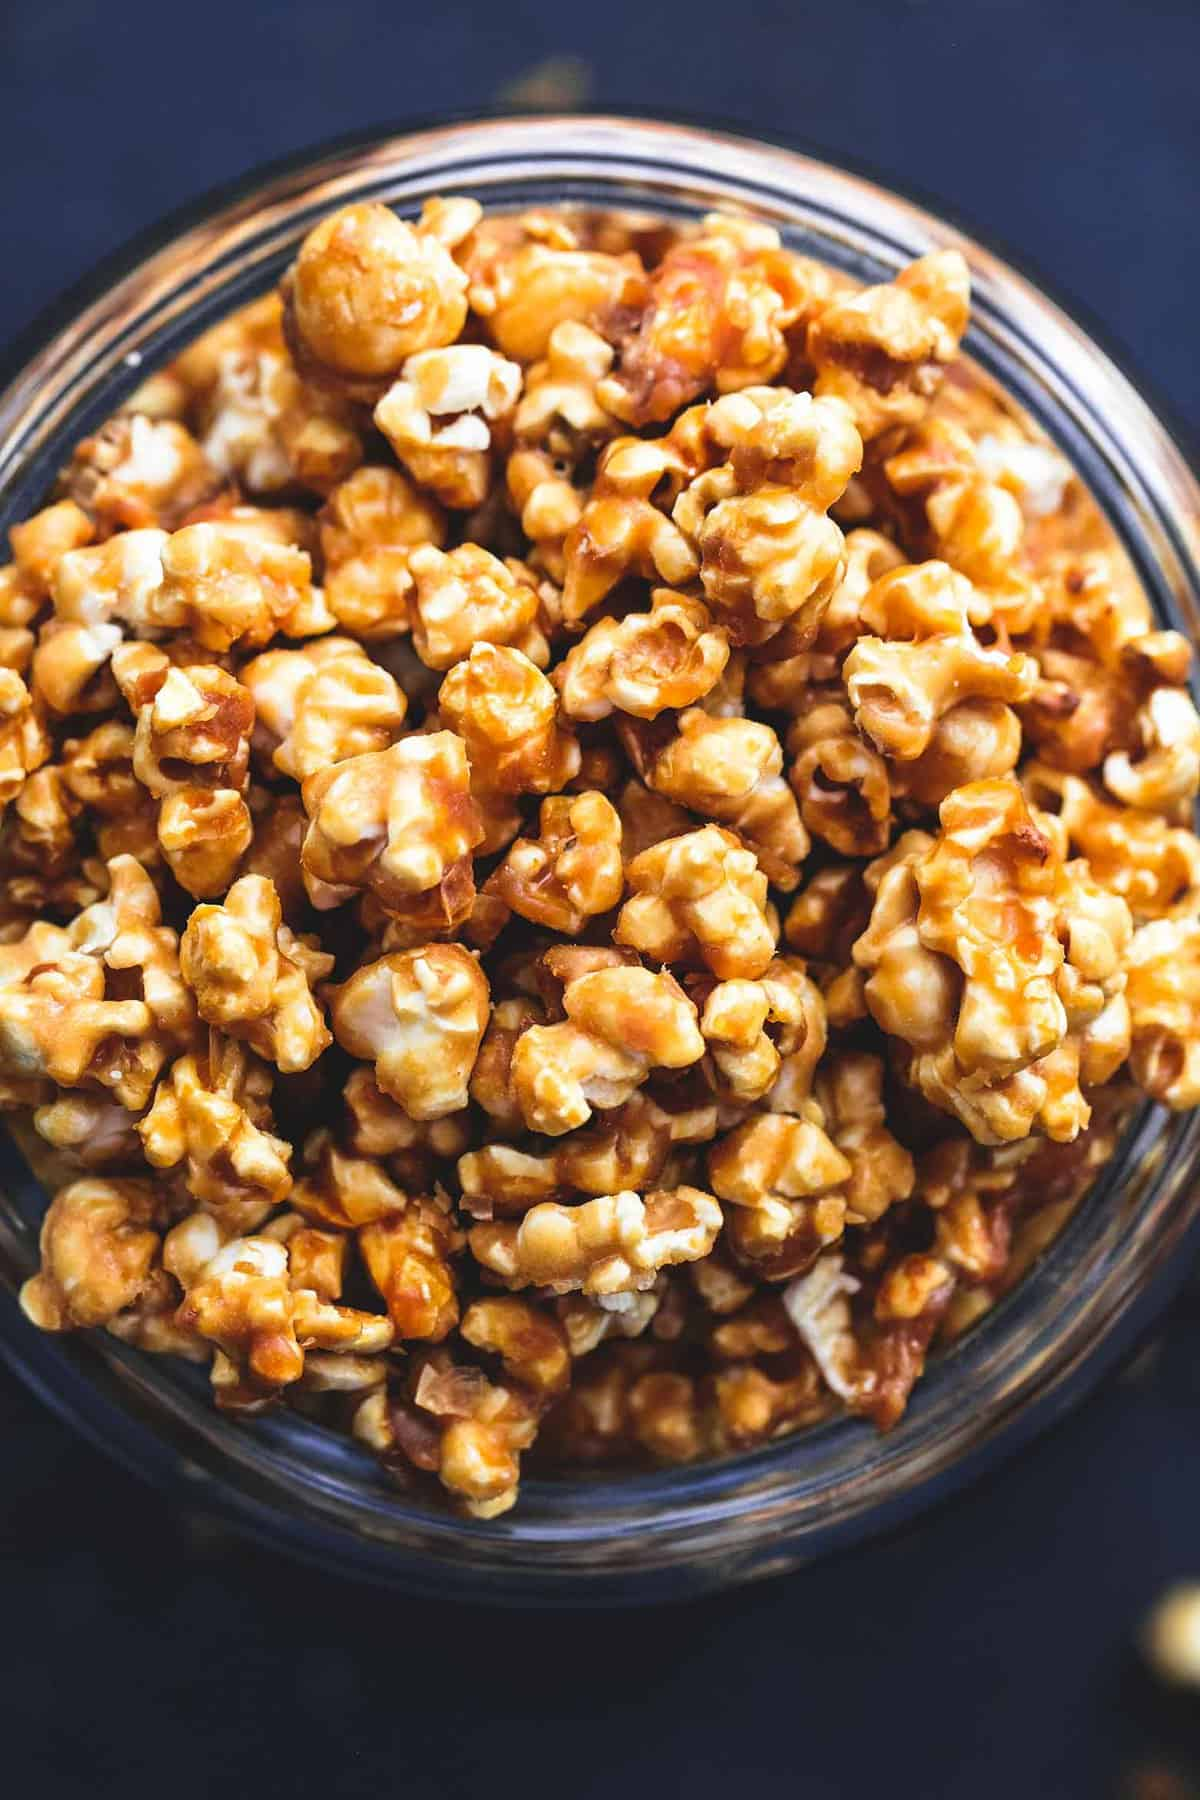 Best Ever Caramel Corn easy recipe | lecremedelacrumb.com